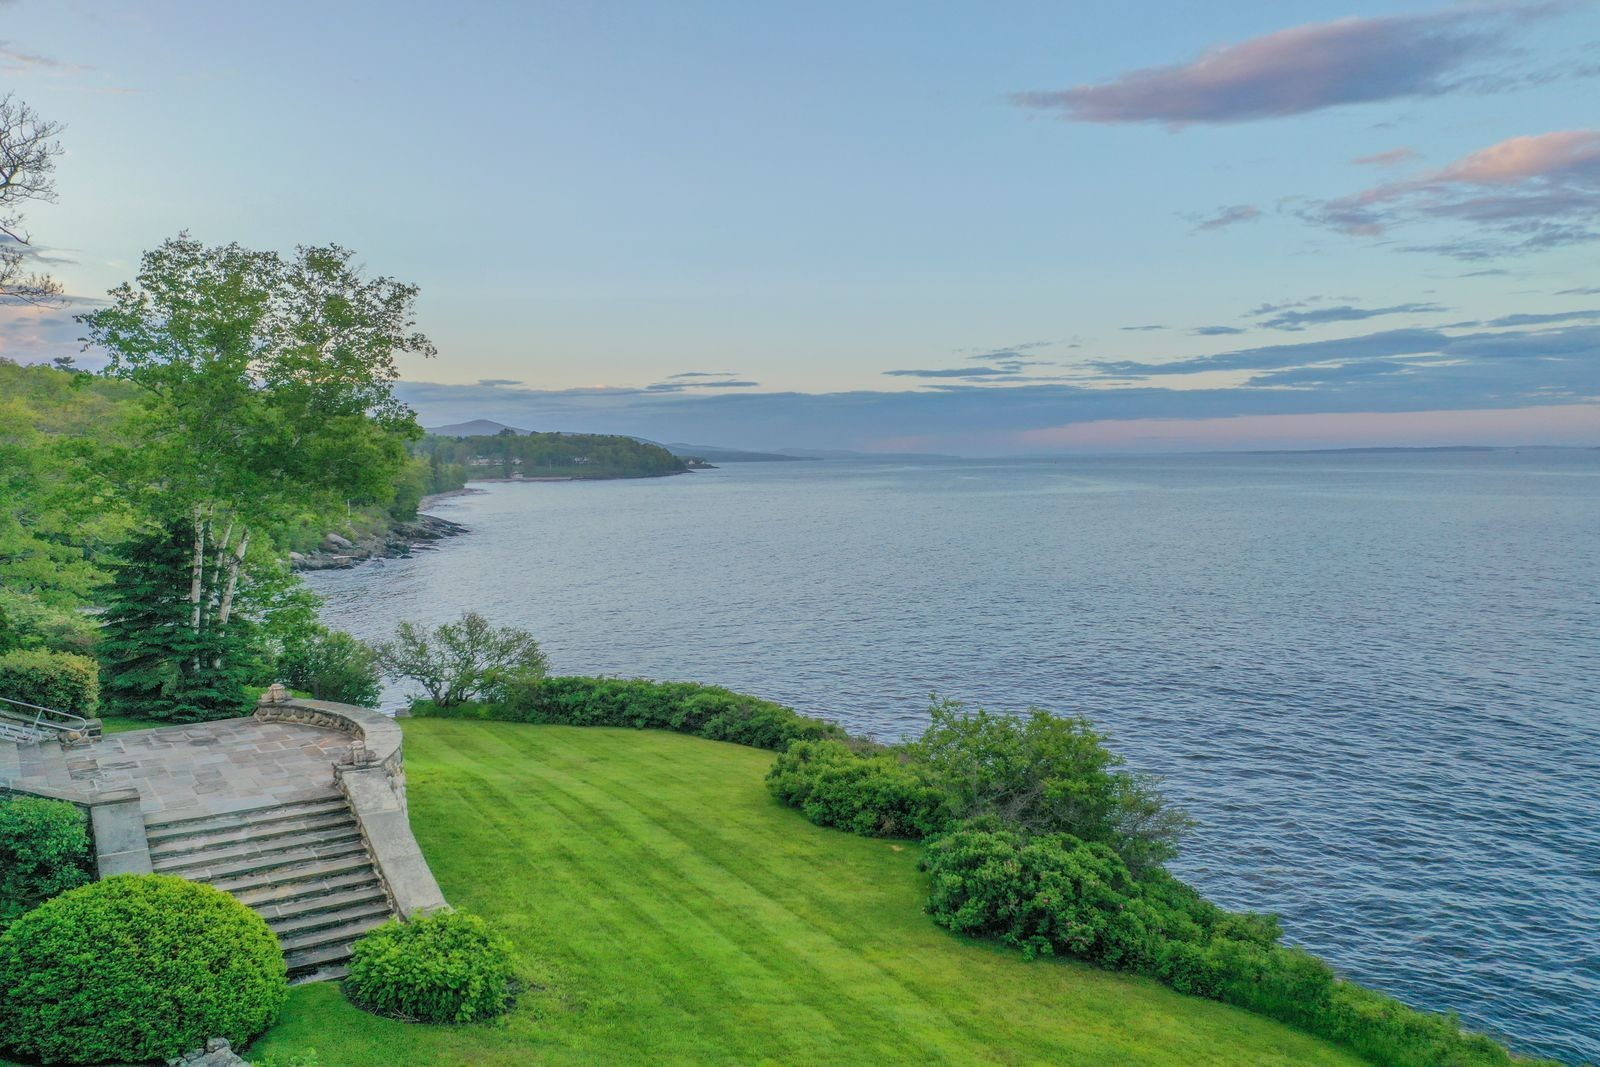 lyndonwood a luxury single family home for sale in rockport, maine property id 355180052 christie s international real estate